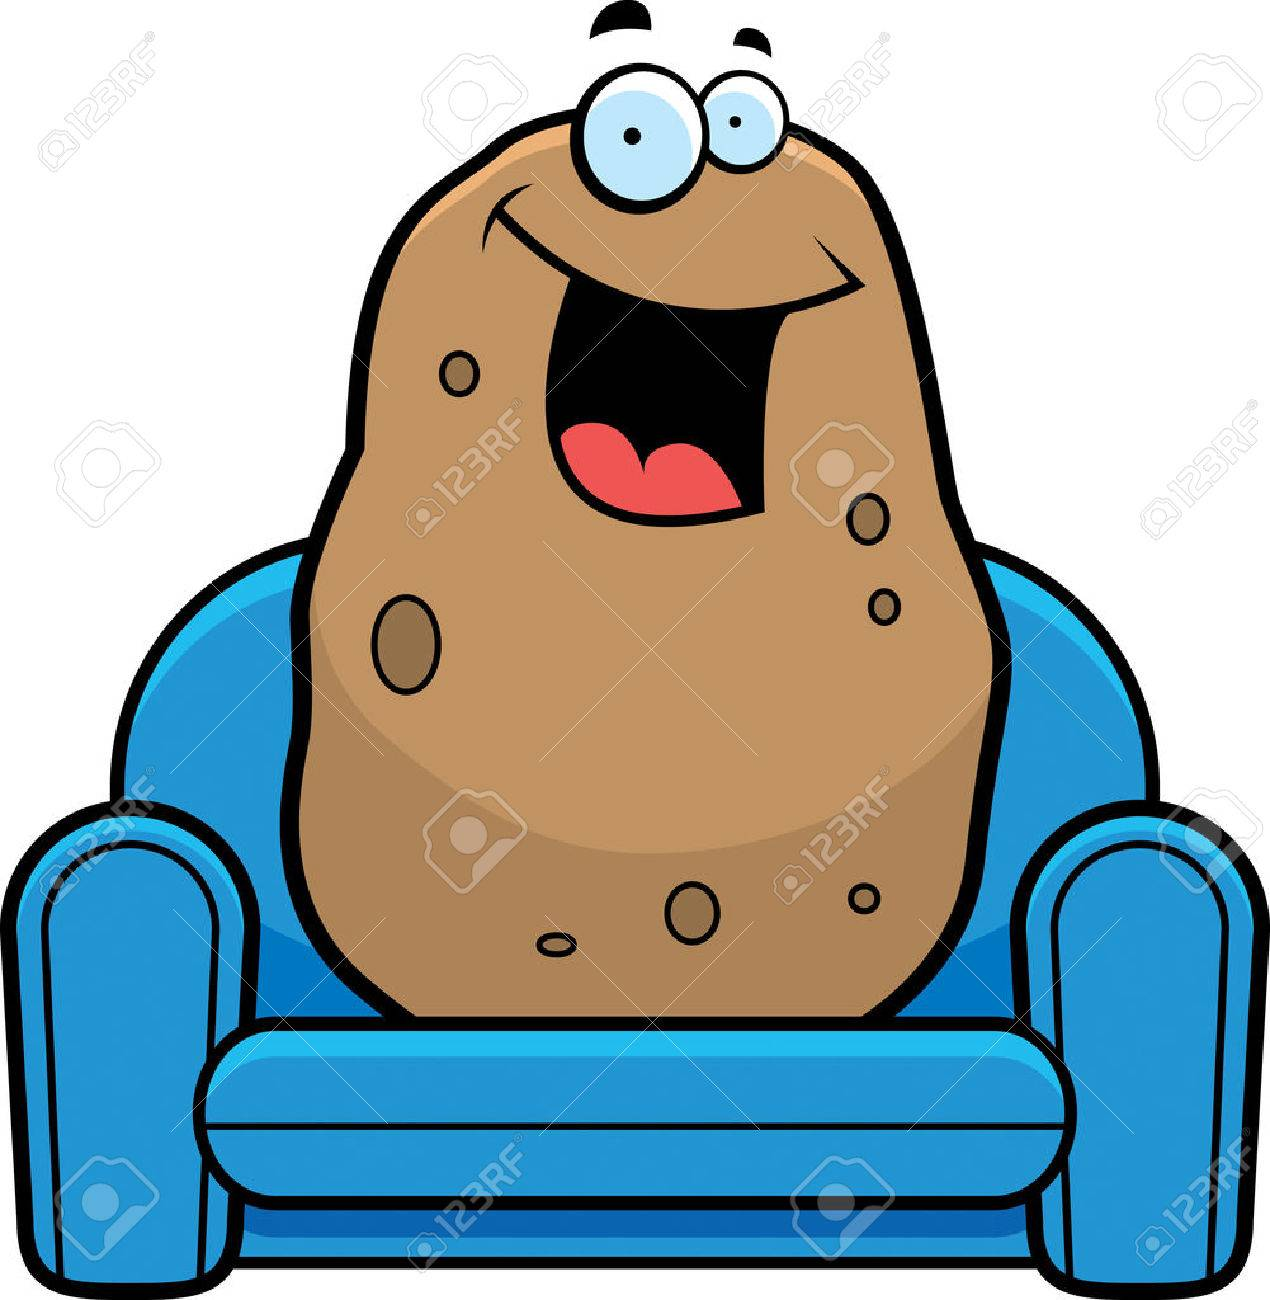 a cartoon illustration of a couch potato royalty free cliparts rh 123rf com Clay Couch Potato couch potato clipart